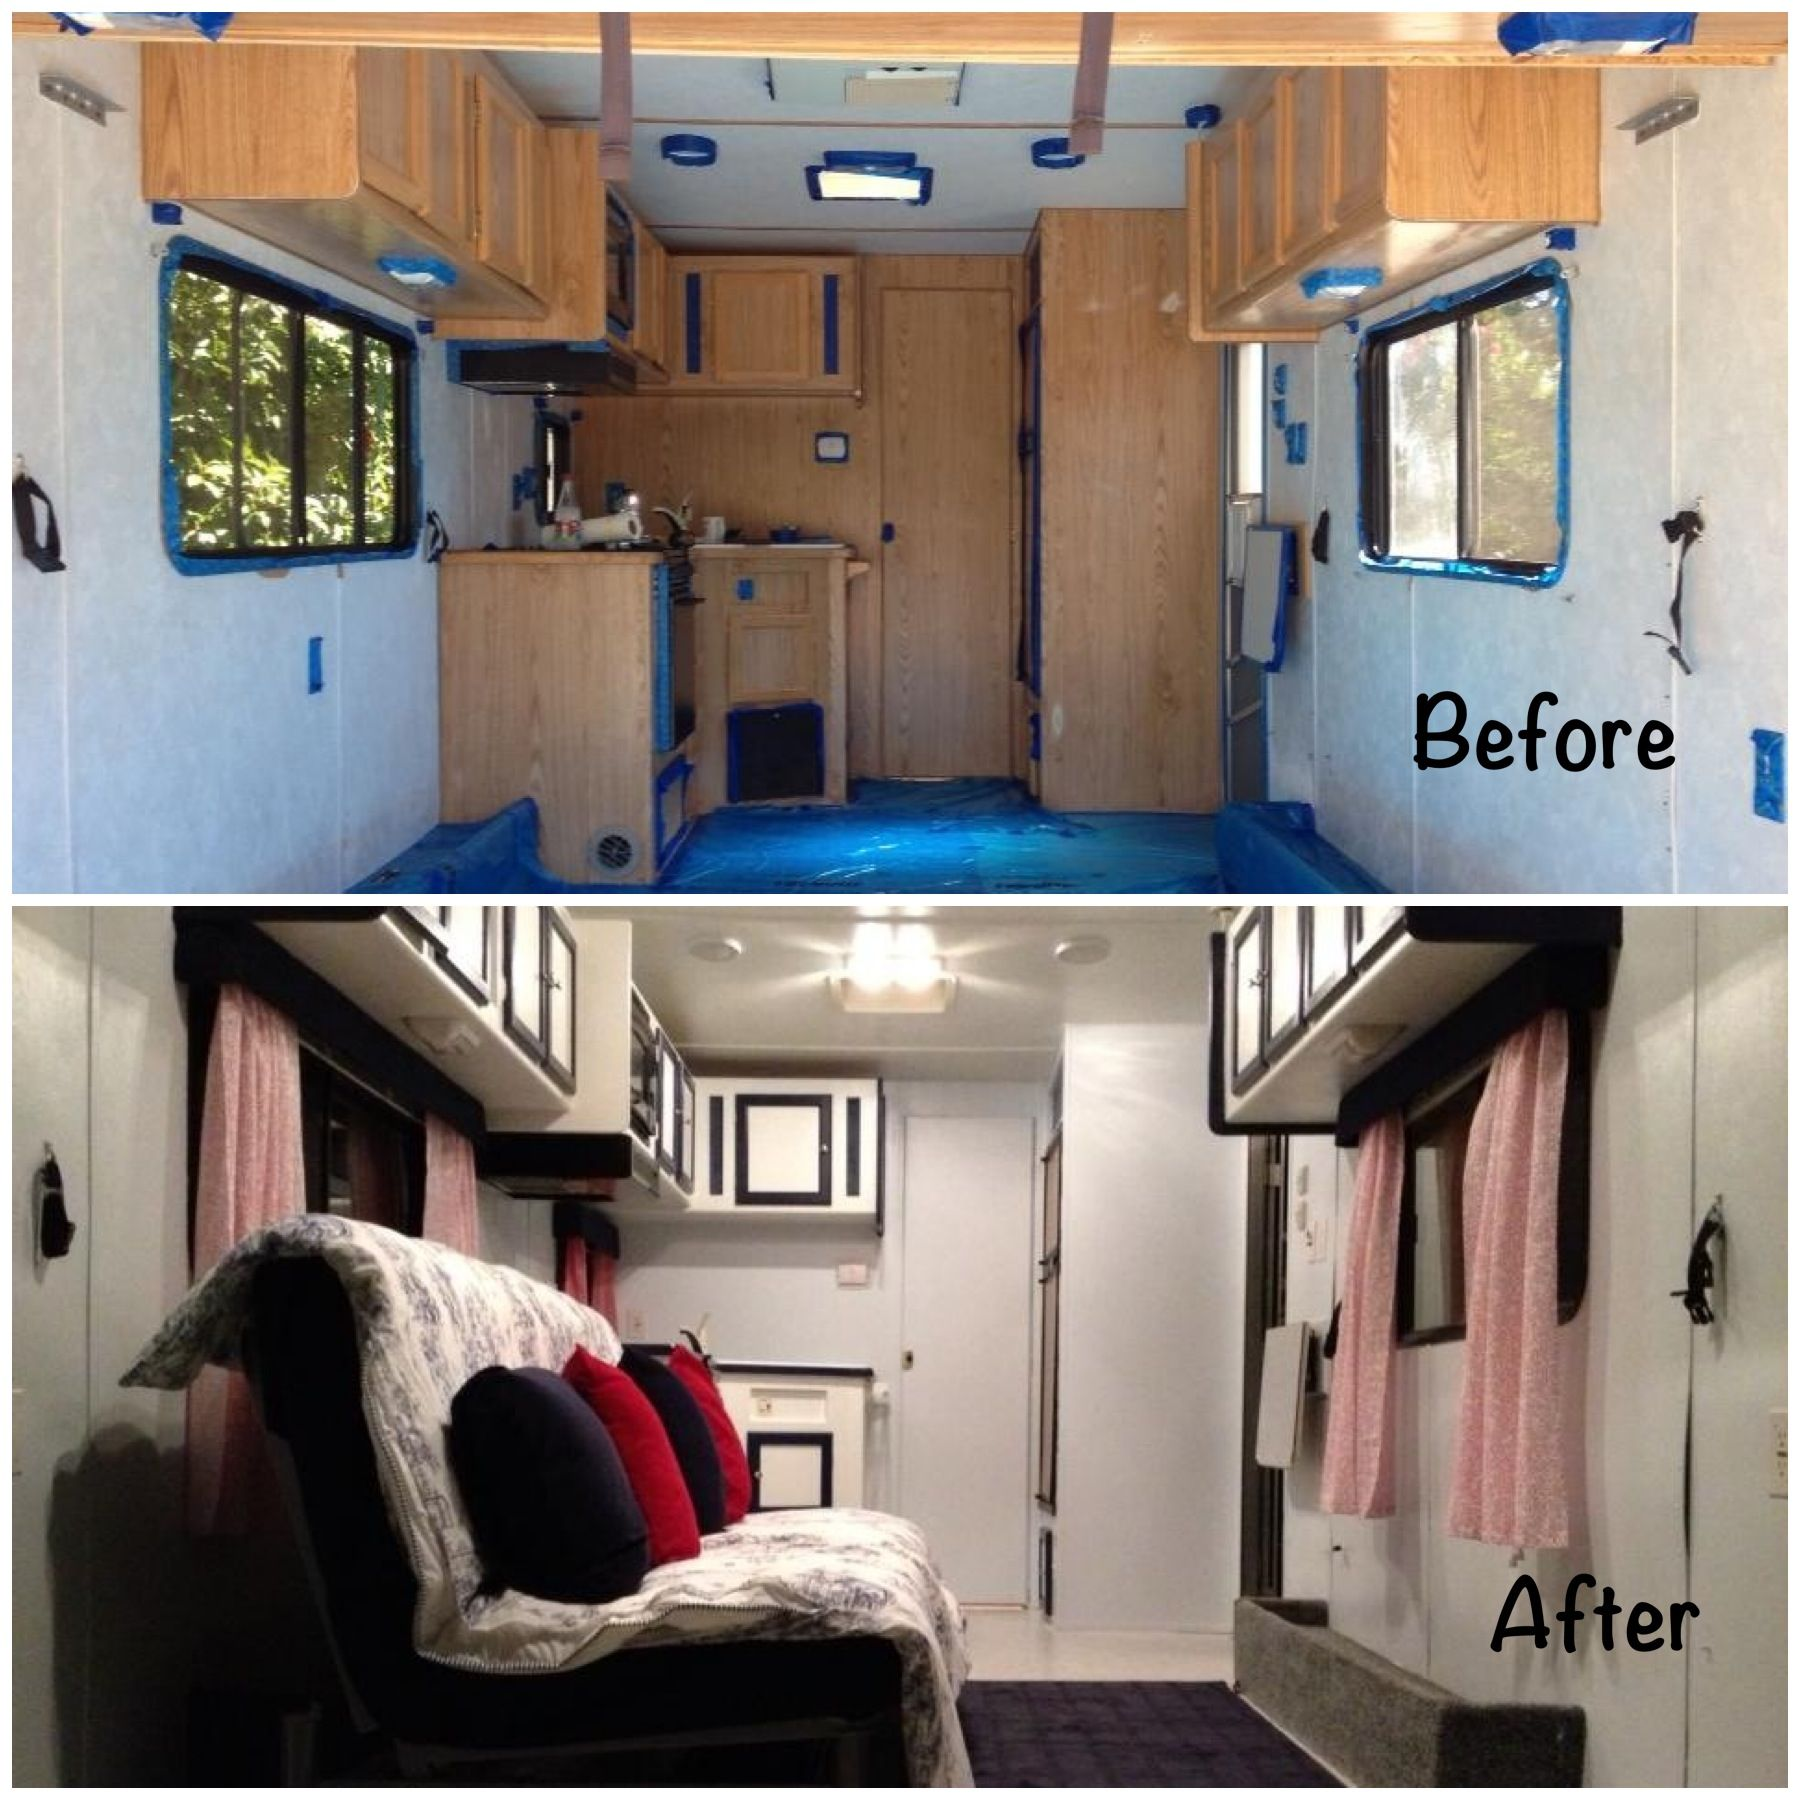 Travel Trailers With Outdoor Kitchens: Travel Trailer Remodel- Removed All Dated Trailer